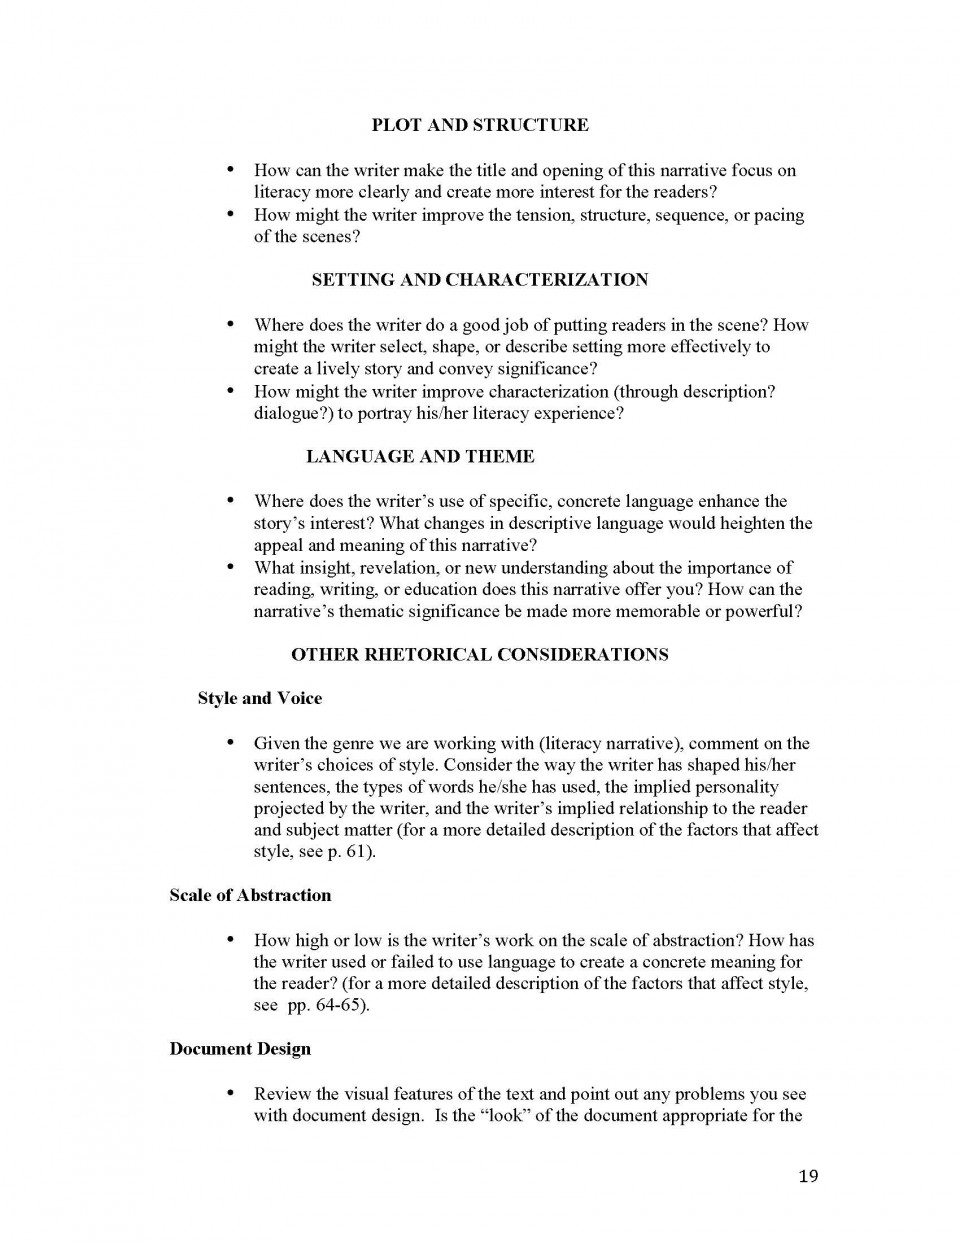 010 Unit 1 Literacy Narrative Instructor Copy Page 19 Immigration Essay Exceptional Conclusion Topics 960